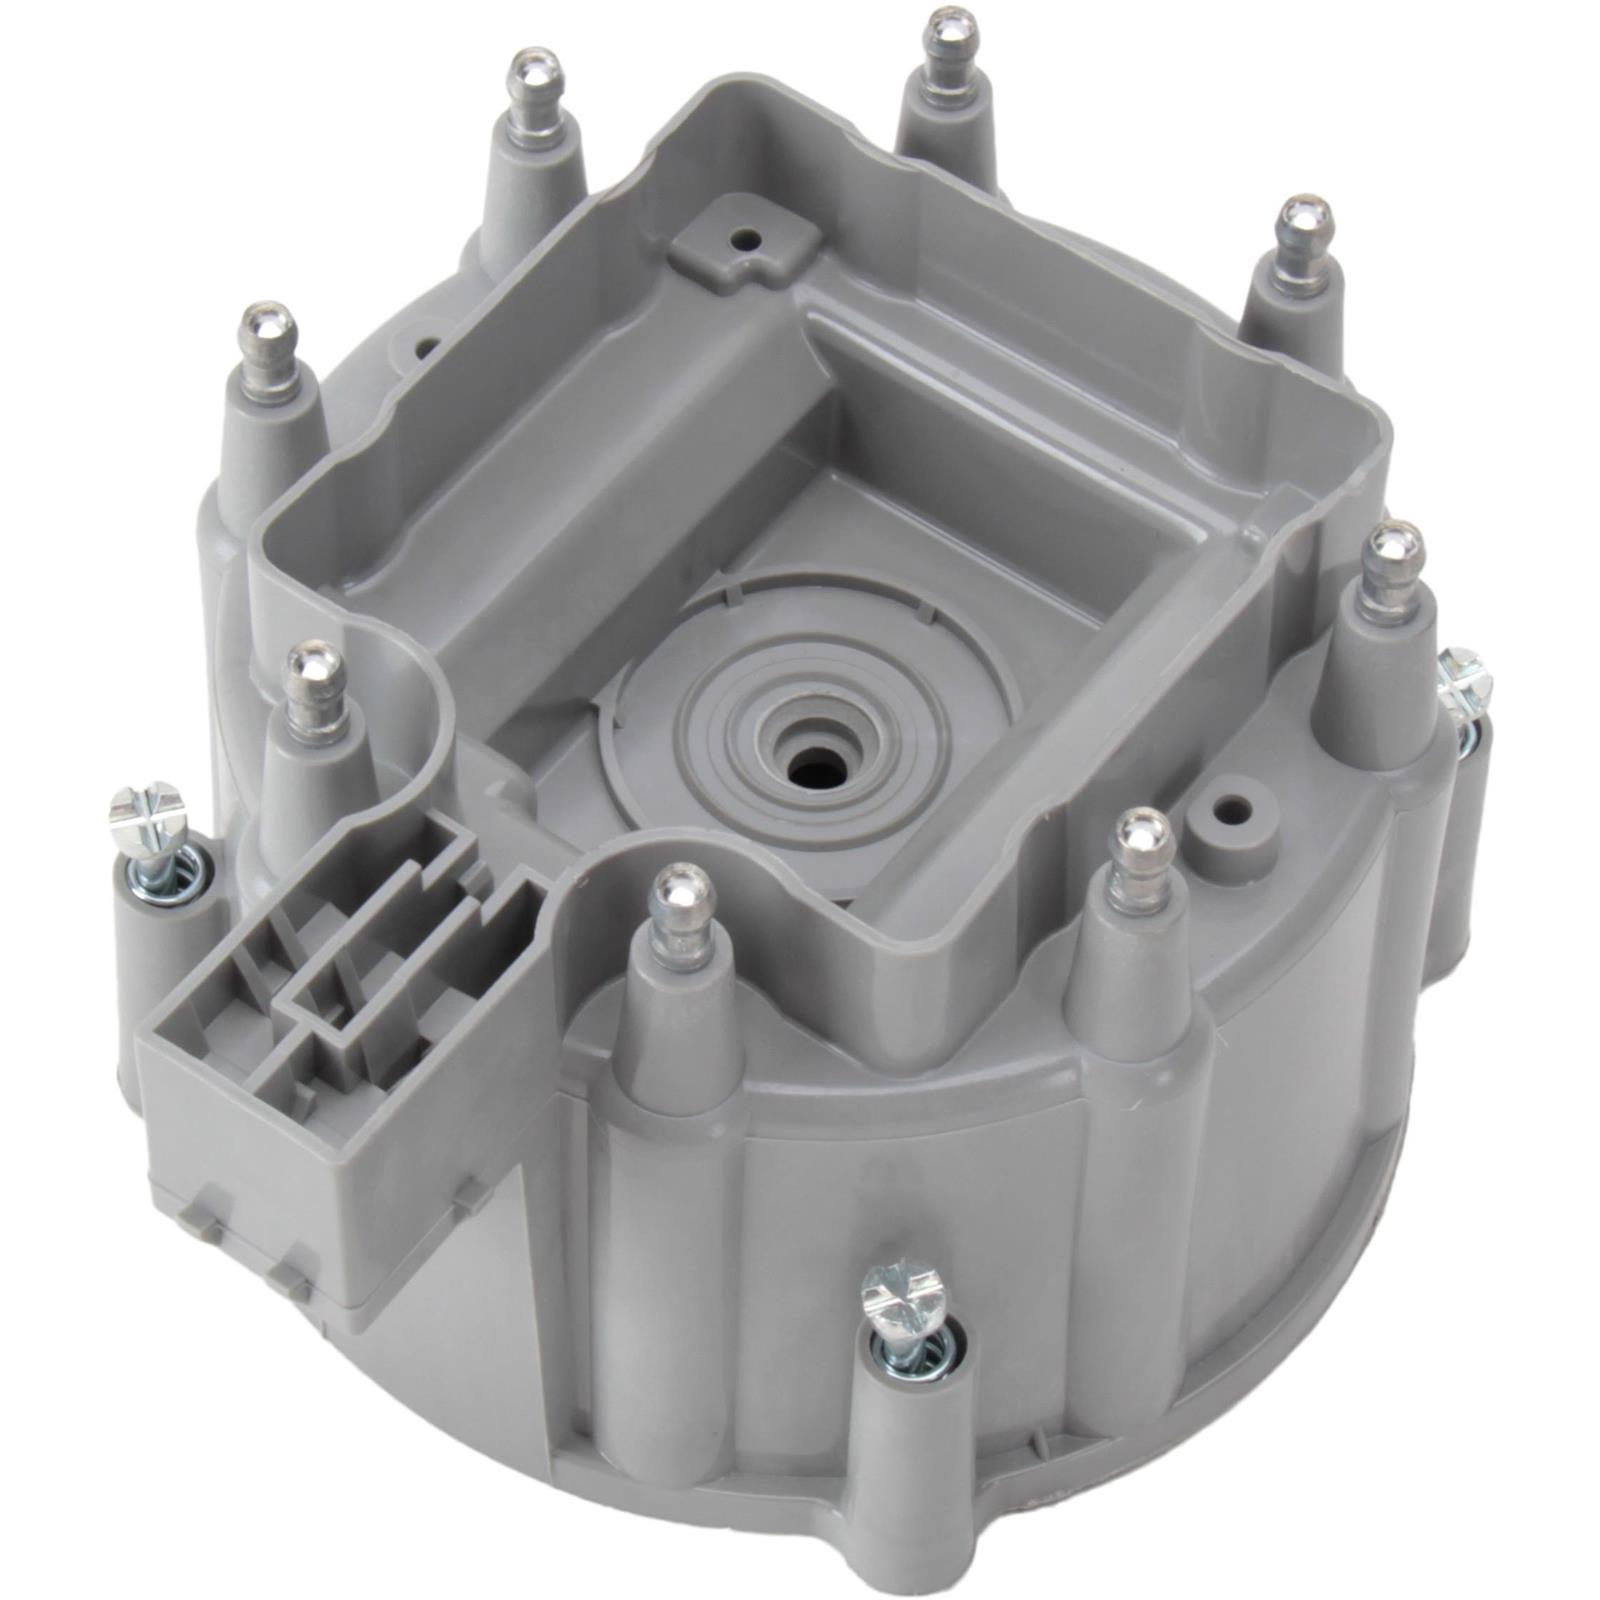 Silver Distributor Cap For Gm Hei V8 Wiring Pig Tail